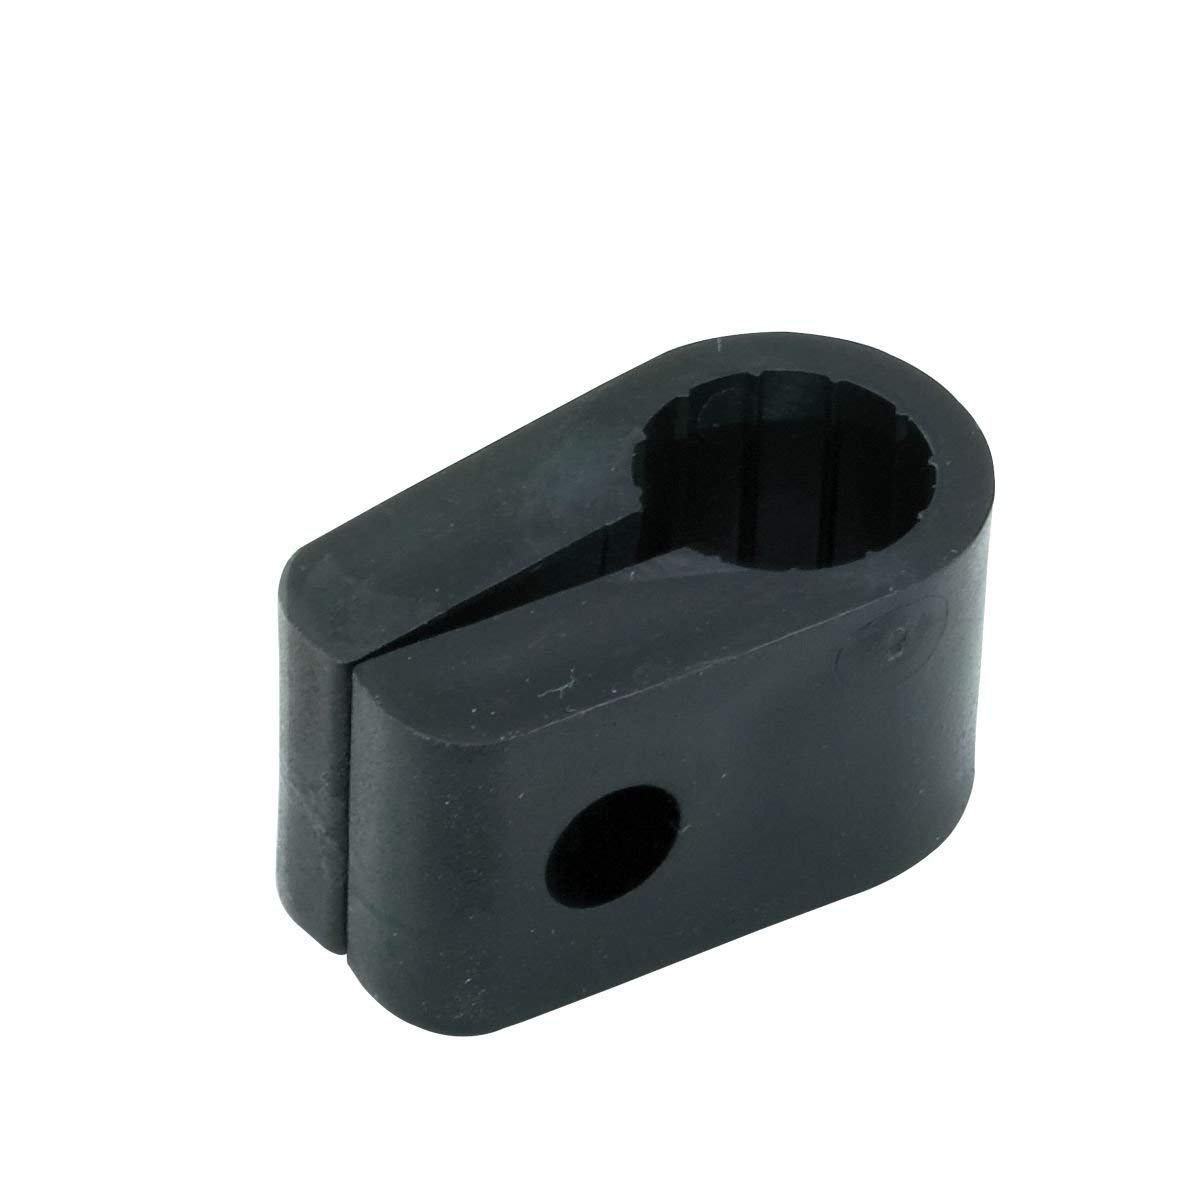 15.2mm Black Heavy Duty Cable Cleats Clips Size No 6 Pack Sizes from 5x-50x